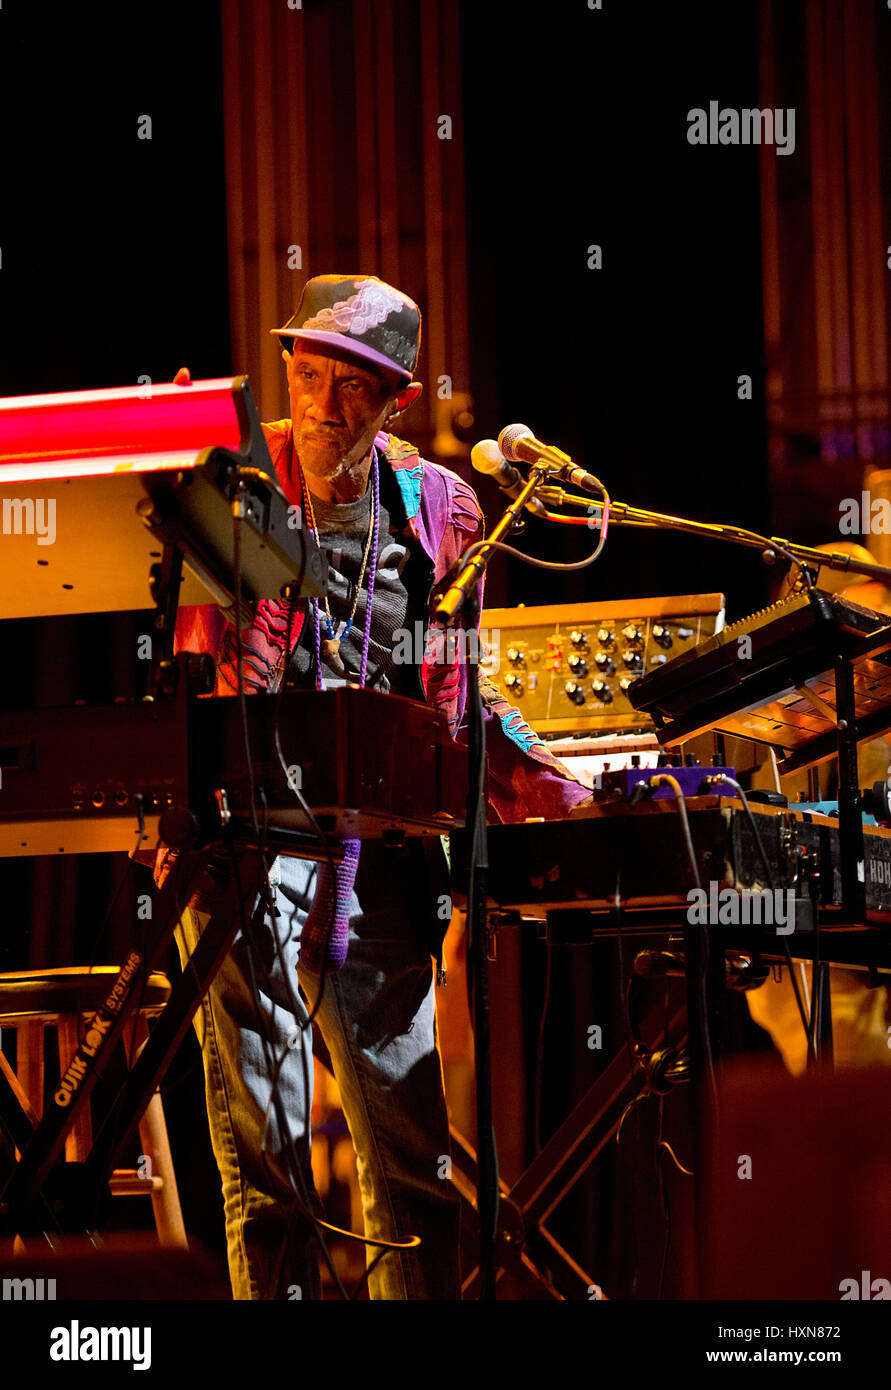 Bernie Worrell Orchestra playing at MOOG Fest at Diana Wortham Theatre, Asheville NC. Bernie Worrell is best known - Stock Image